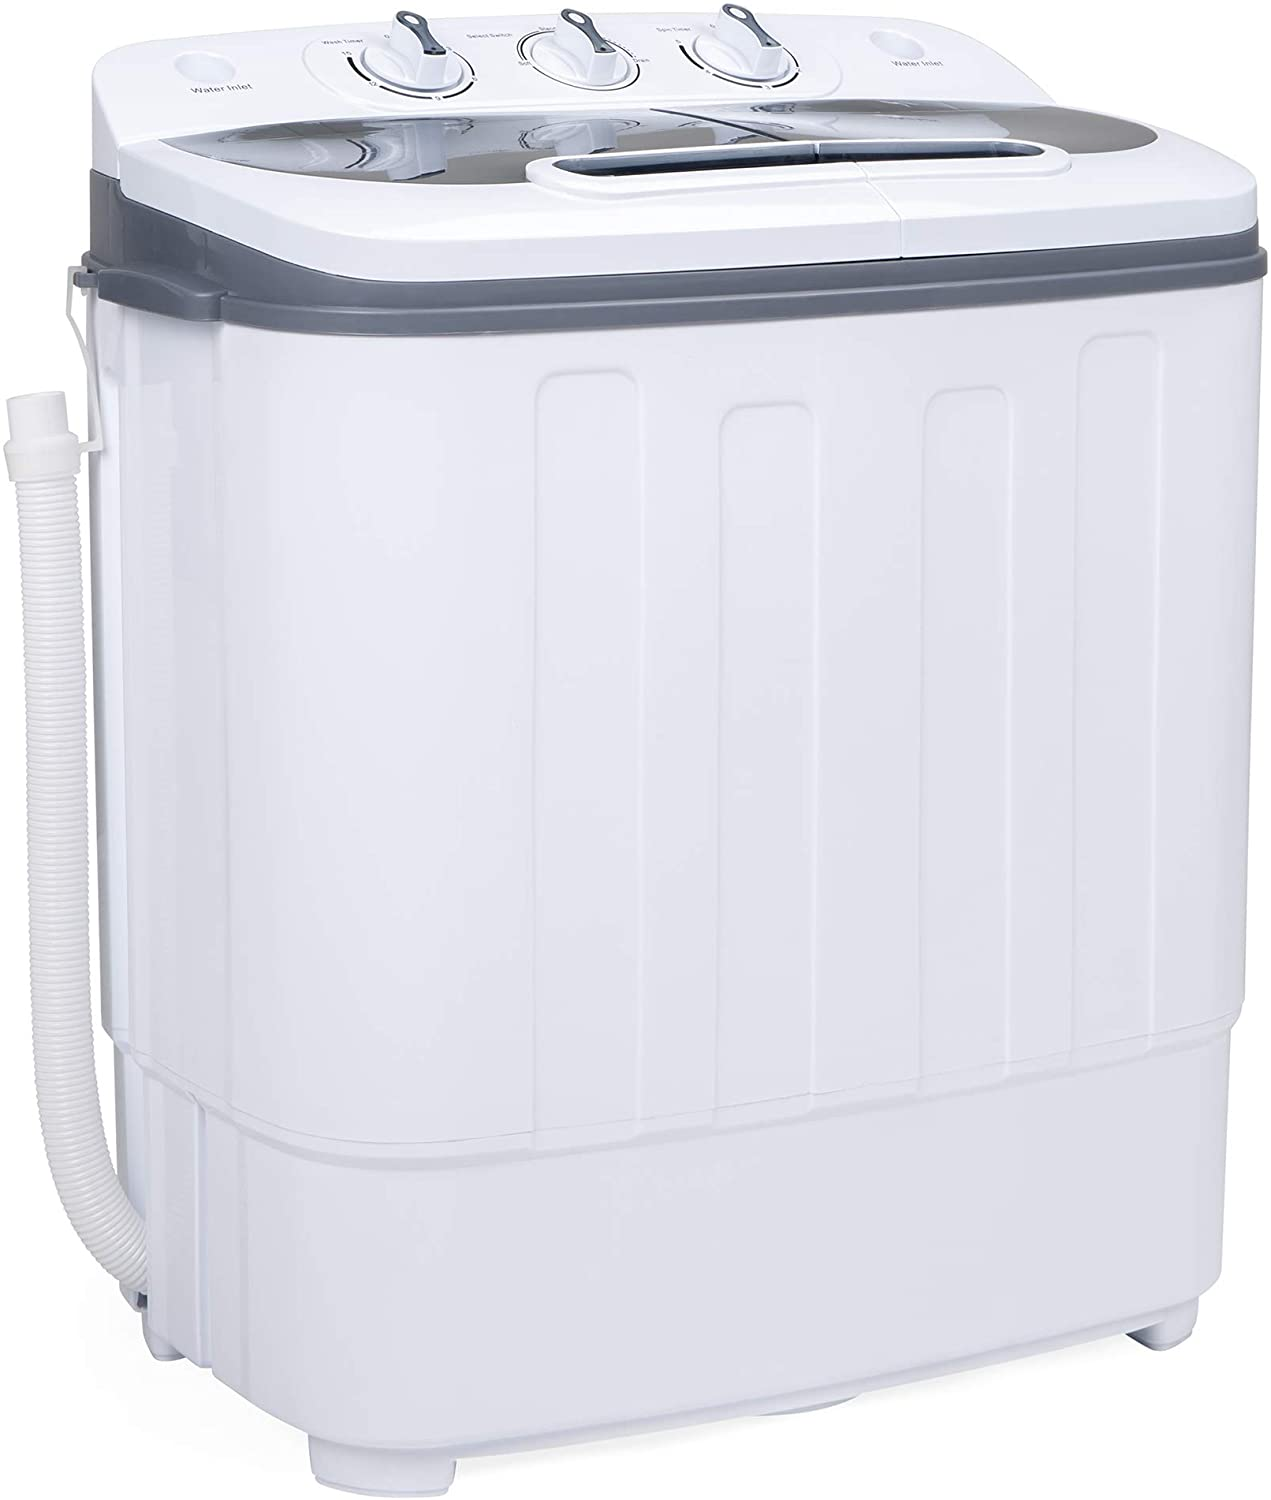 Best Choice Multipurpose Portable Washing Machine